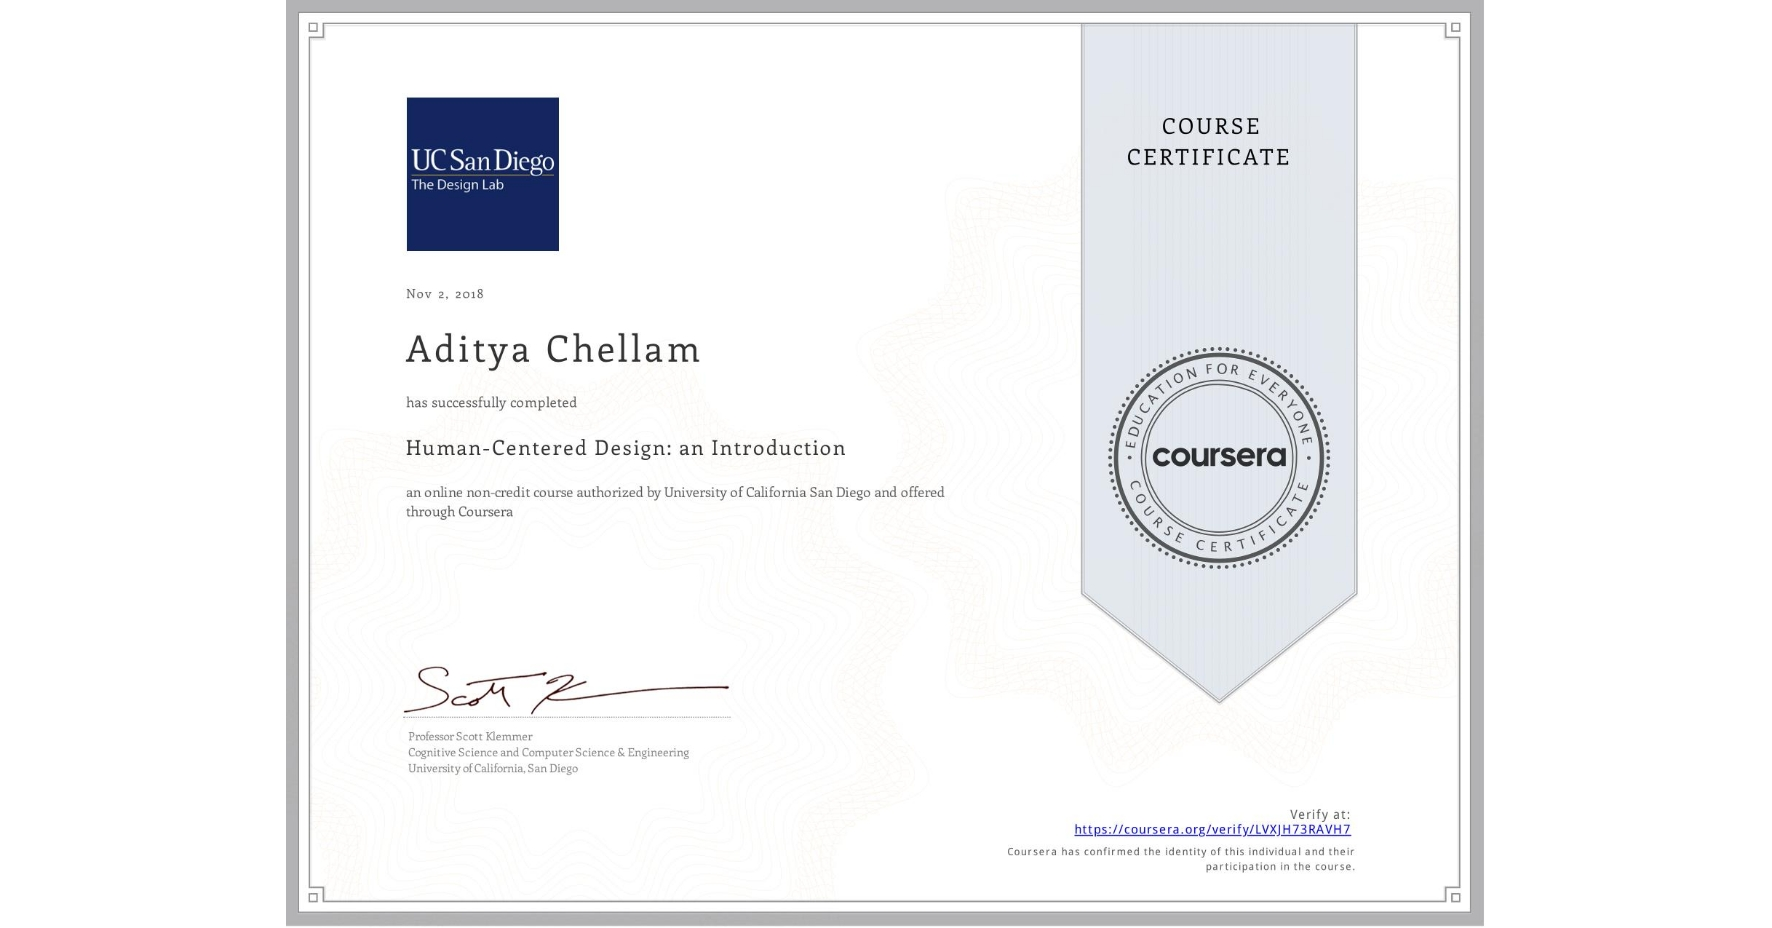 View certificate for Aditya Chellam, Human-Centered Design: an Introduction, an online non-credit course authorized by University of California San Diego and offered through Coursera